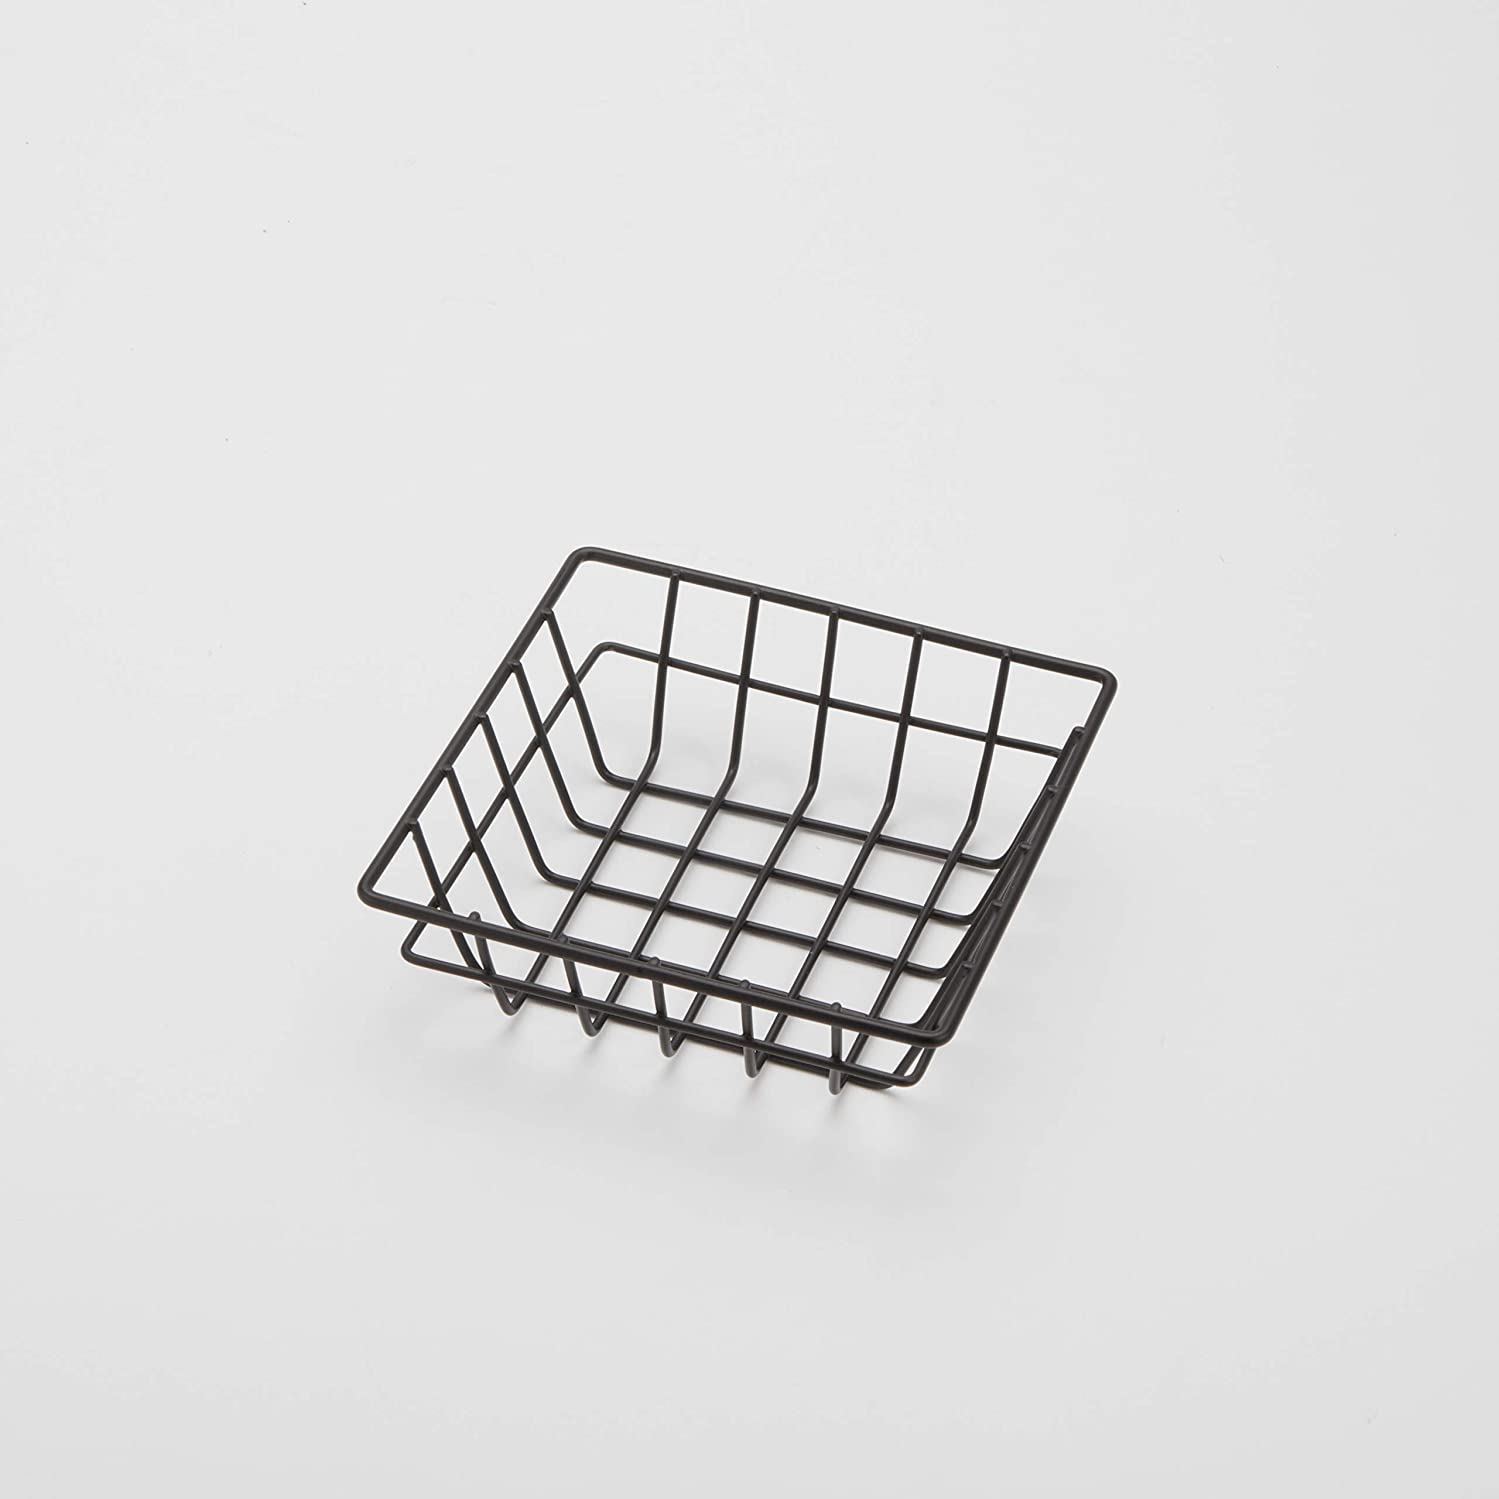 American Metalcraft SQGB6 Square Wire Grid Basket, Black, 6-Inches